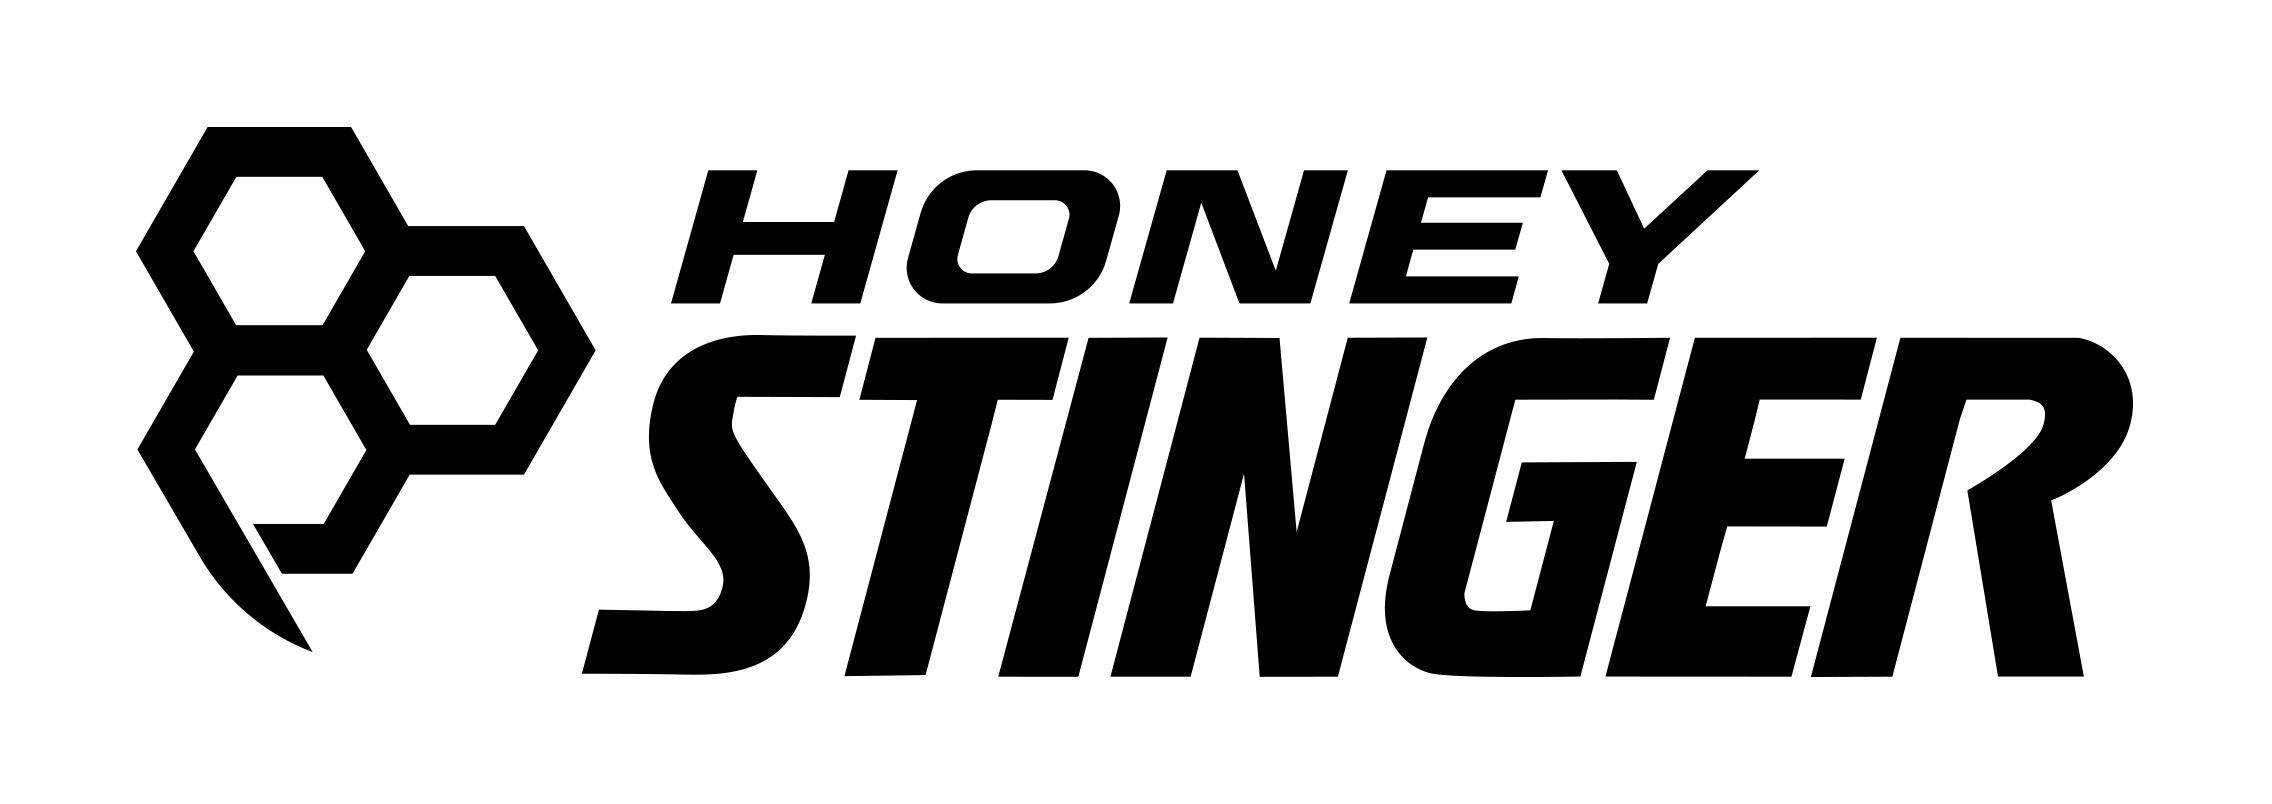 Honey Stinger Logo.jpg